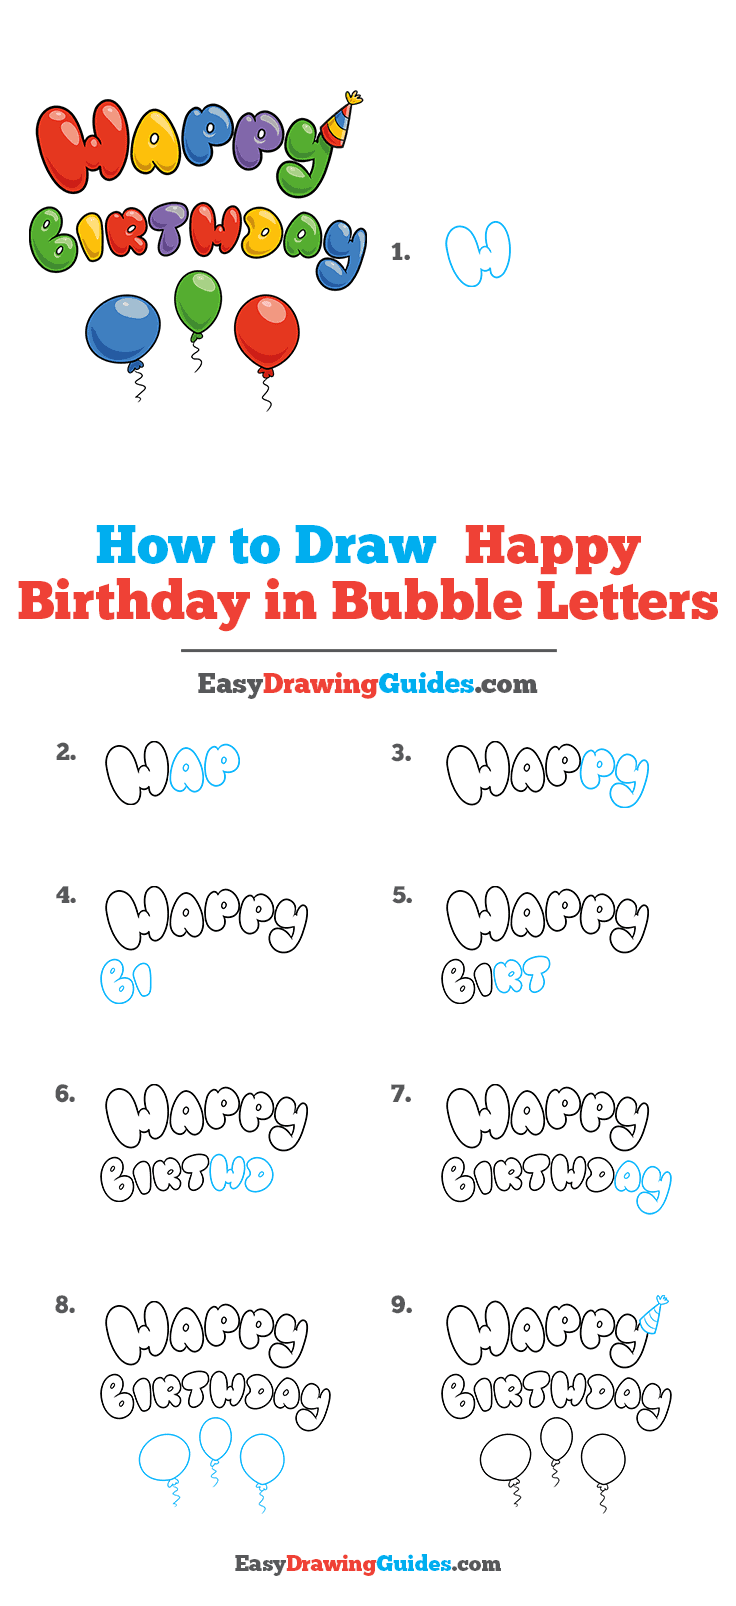 How to Draw Happy Birthday in Bubble Letters